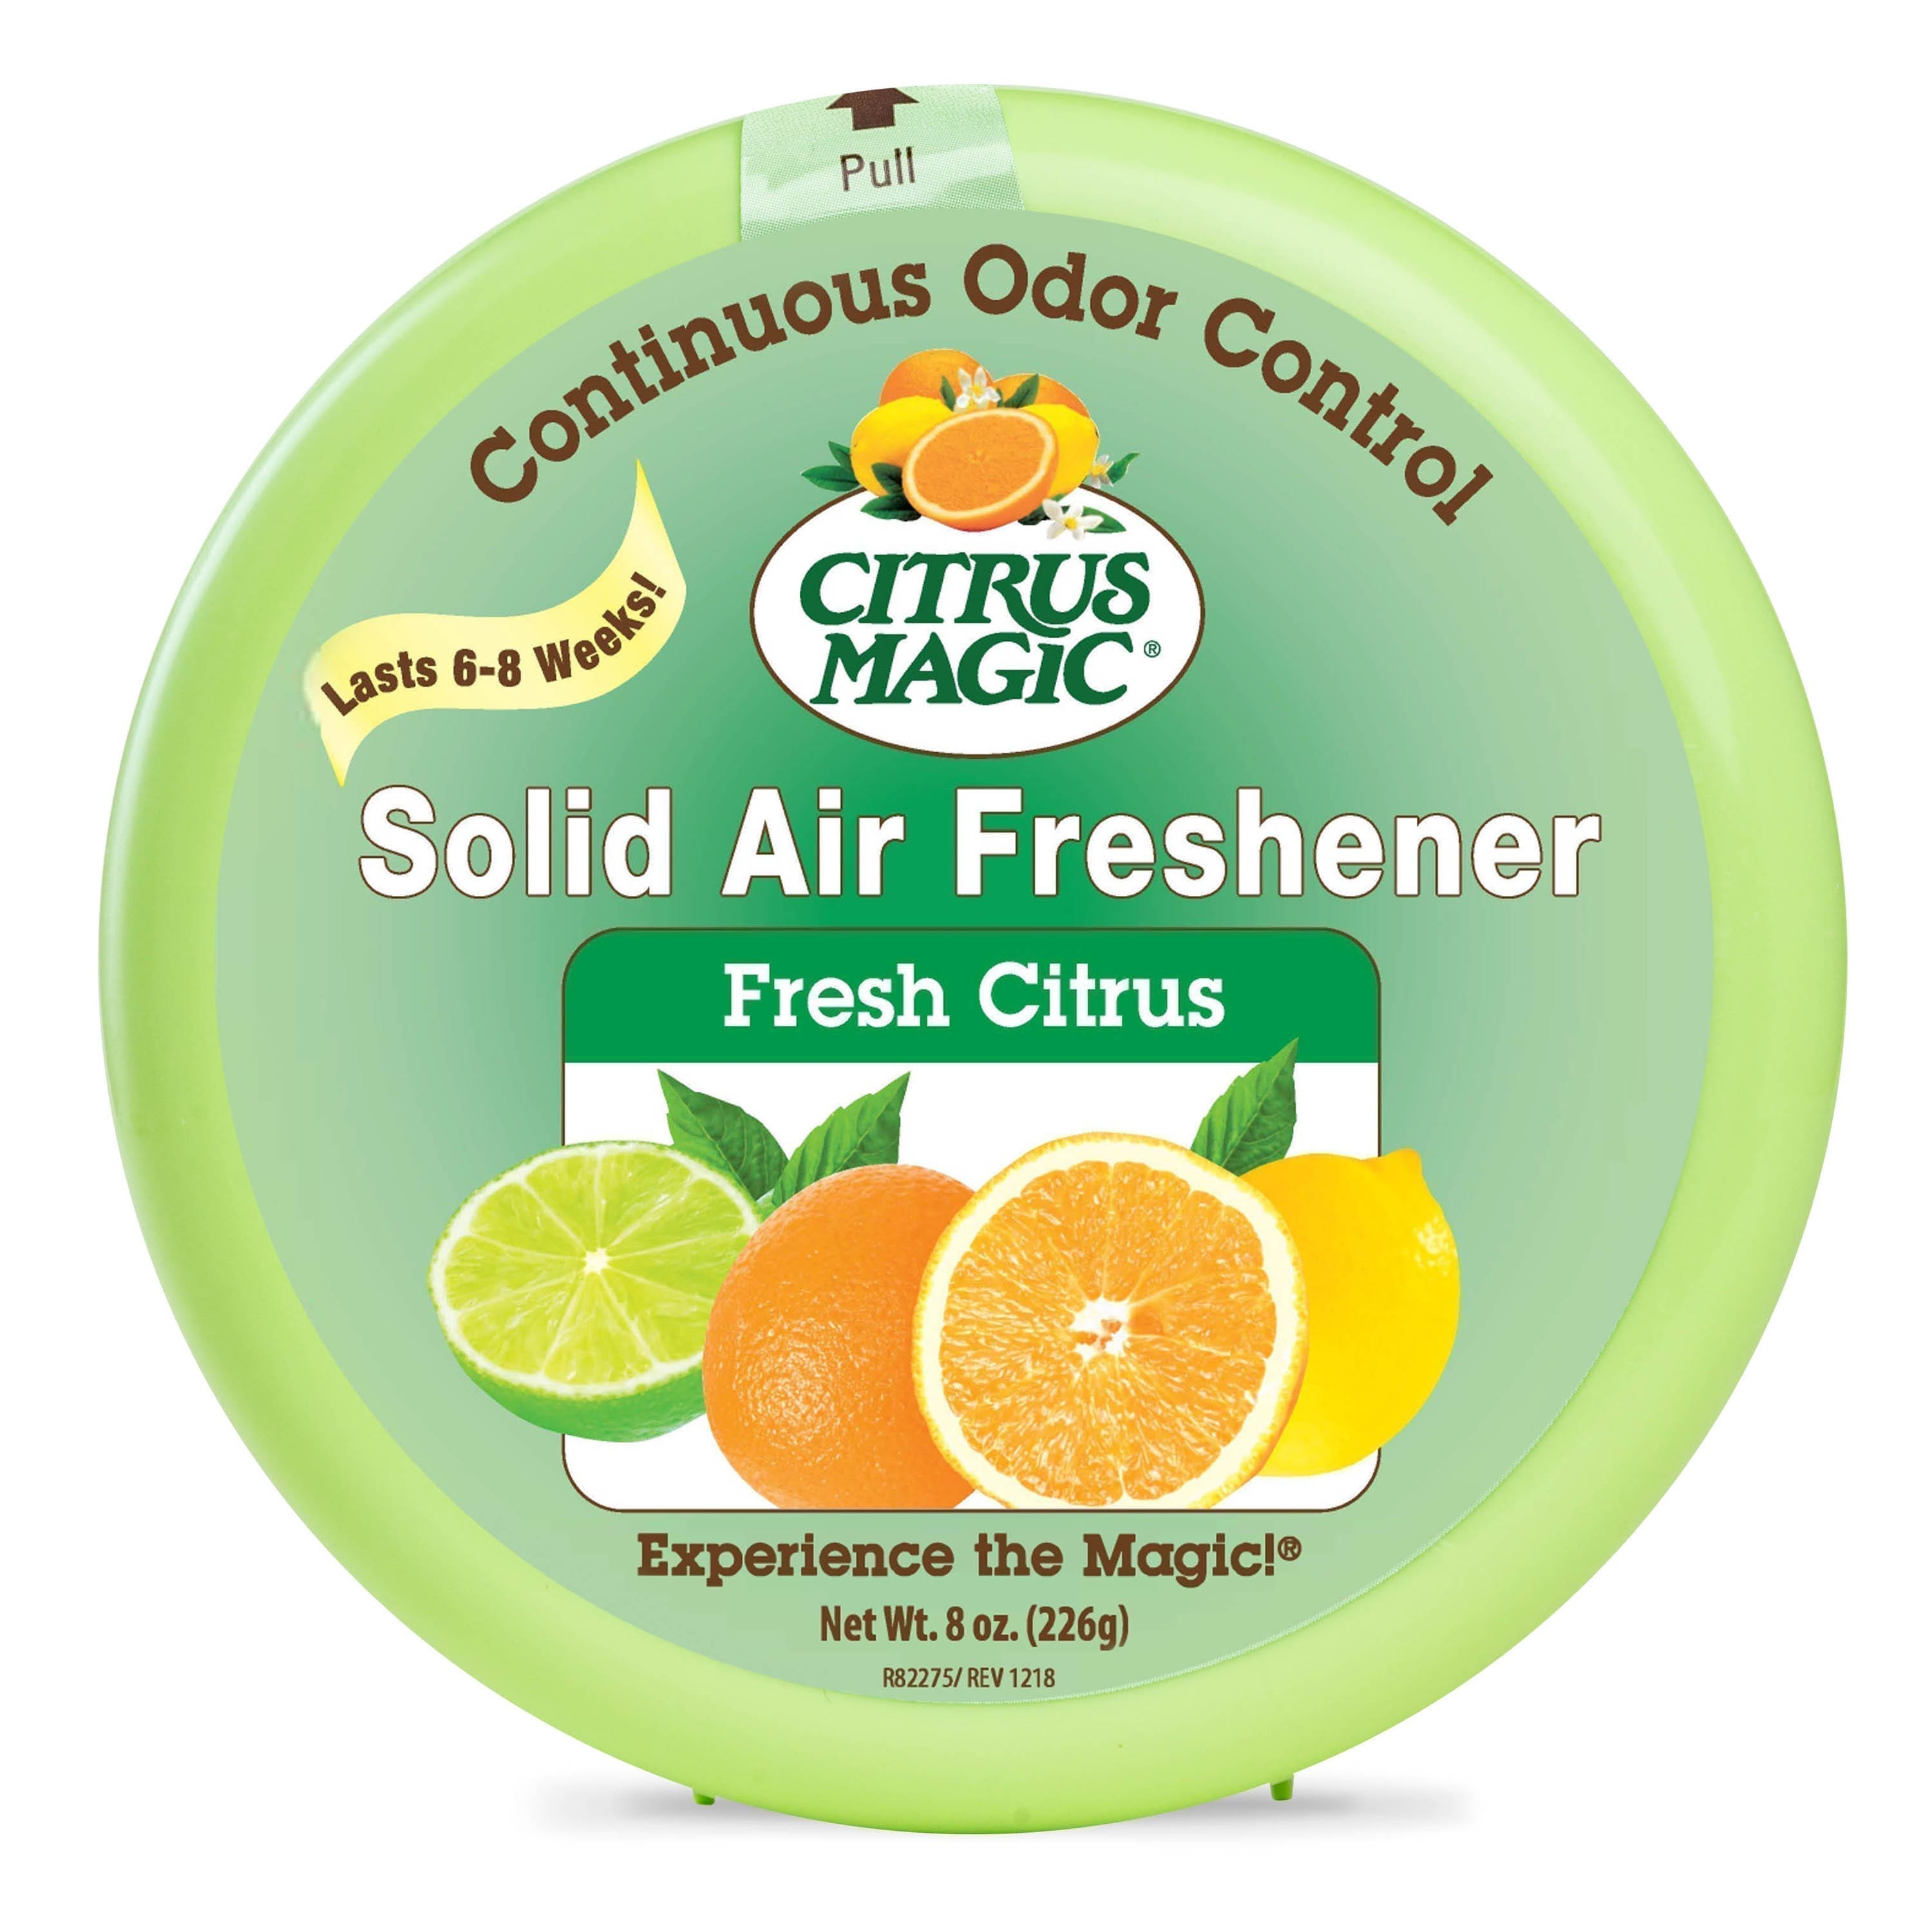 Citrus Magic Odor Absorbing Solid Air Freshener, Fresh Citrus